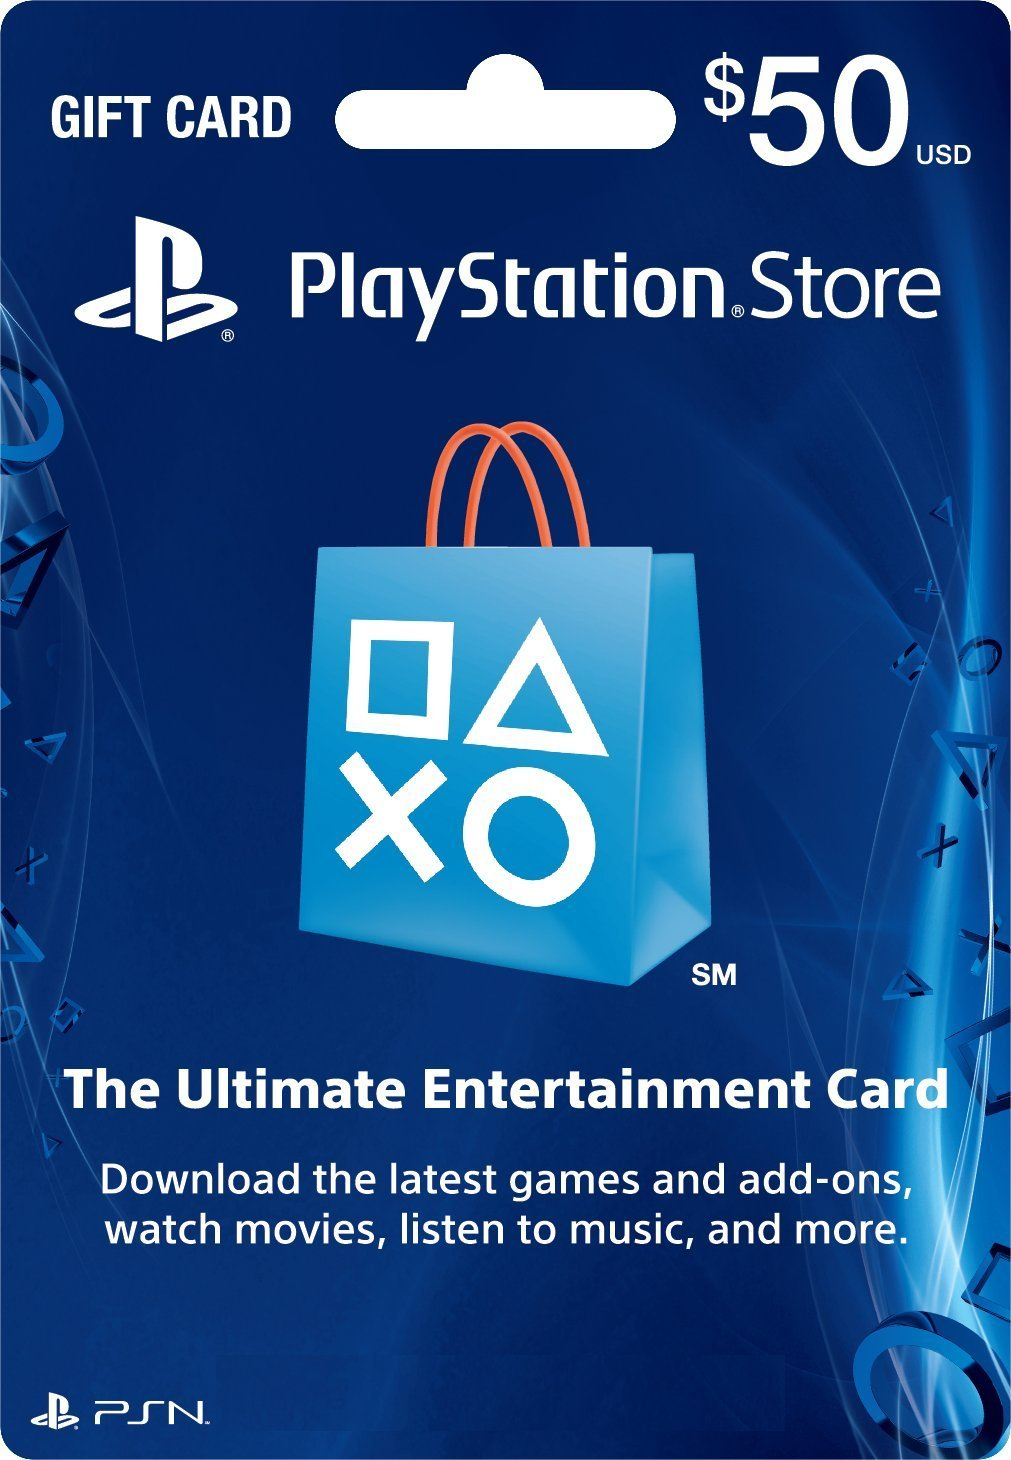 PSN Gift Card Code USA $50 for the PS4, PS3, PS Vita